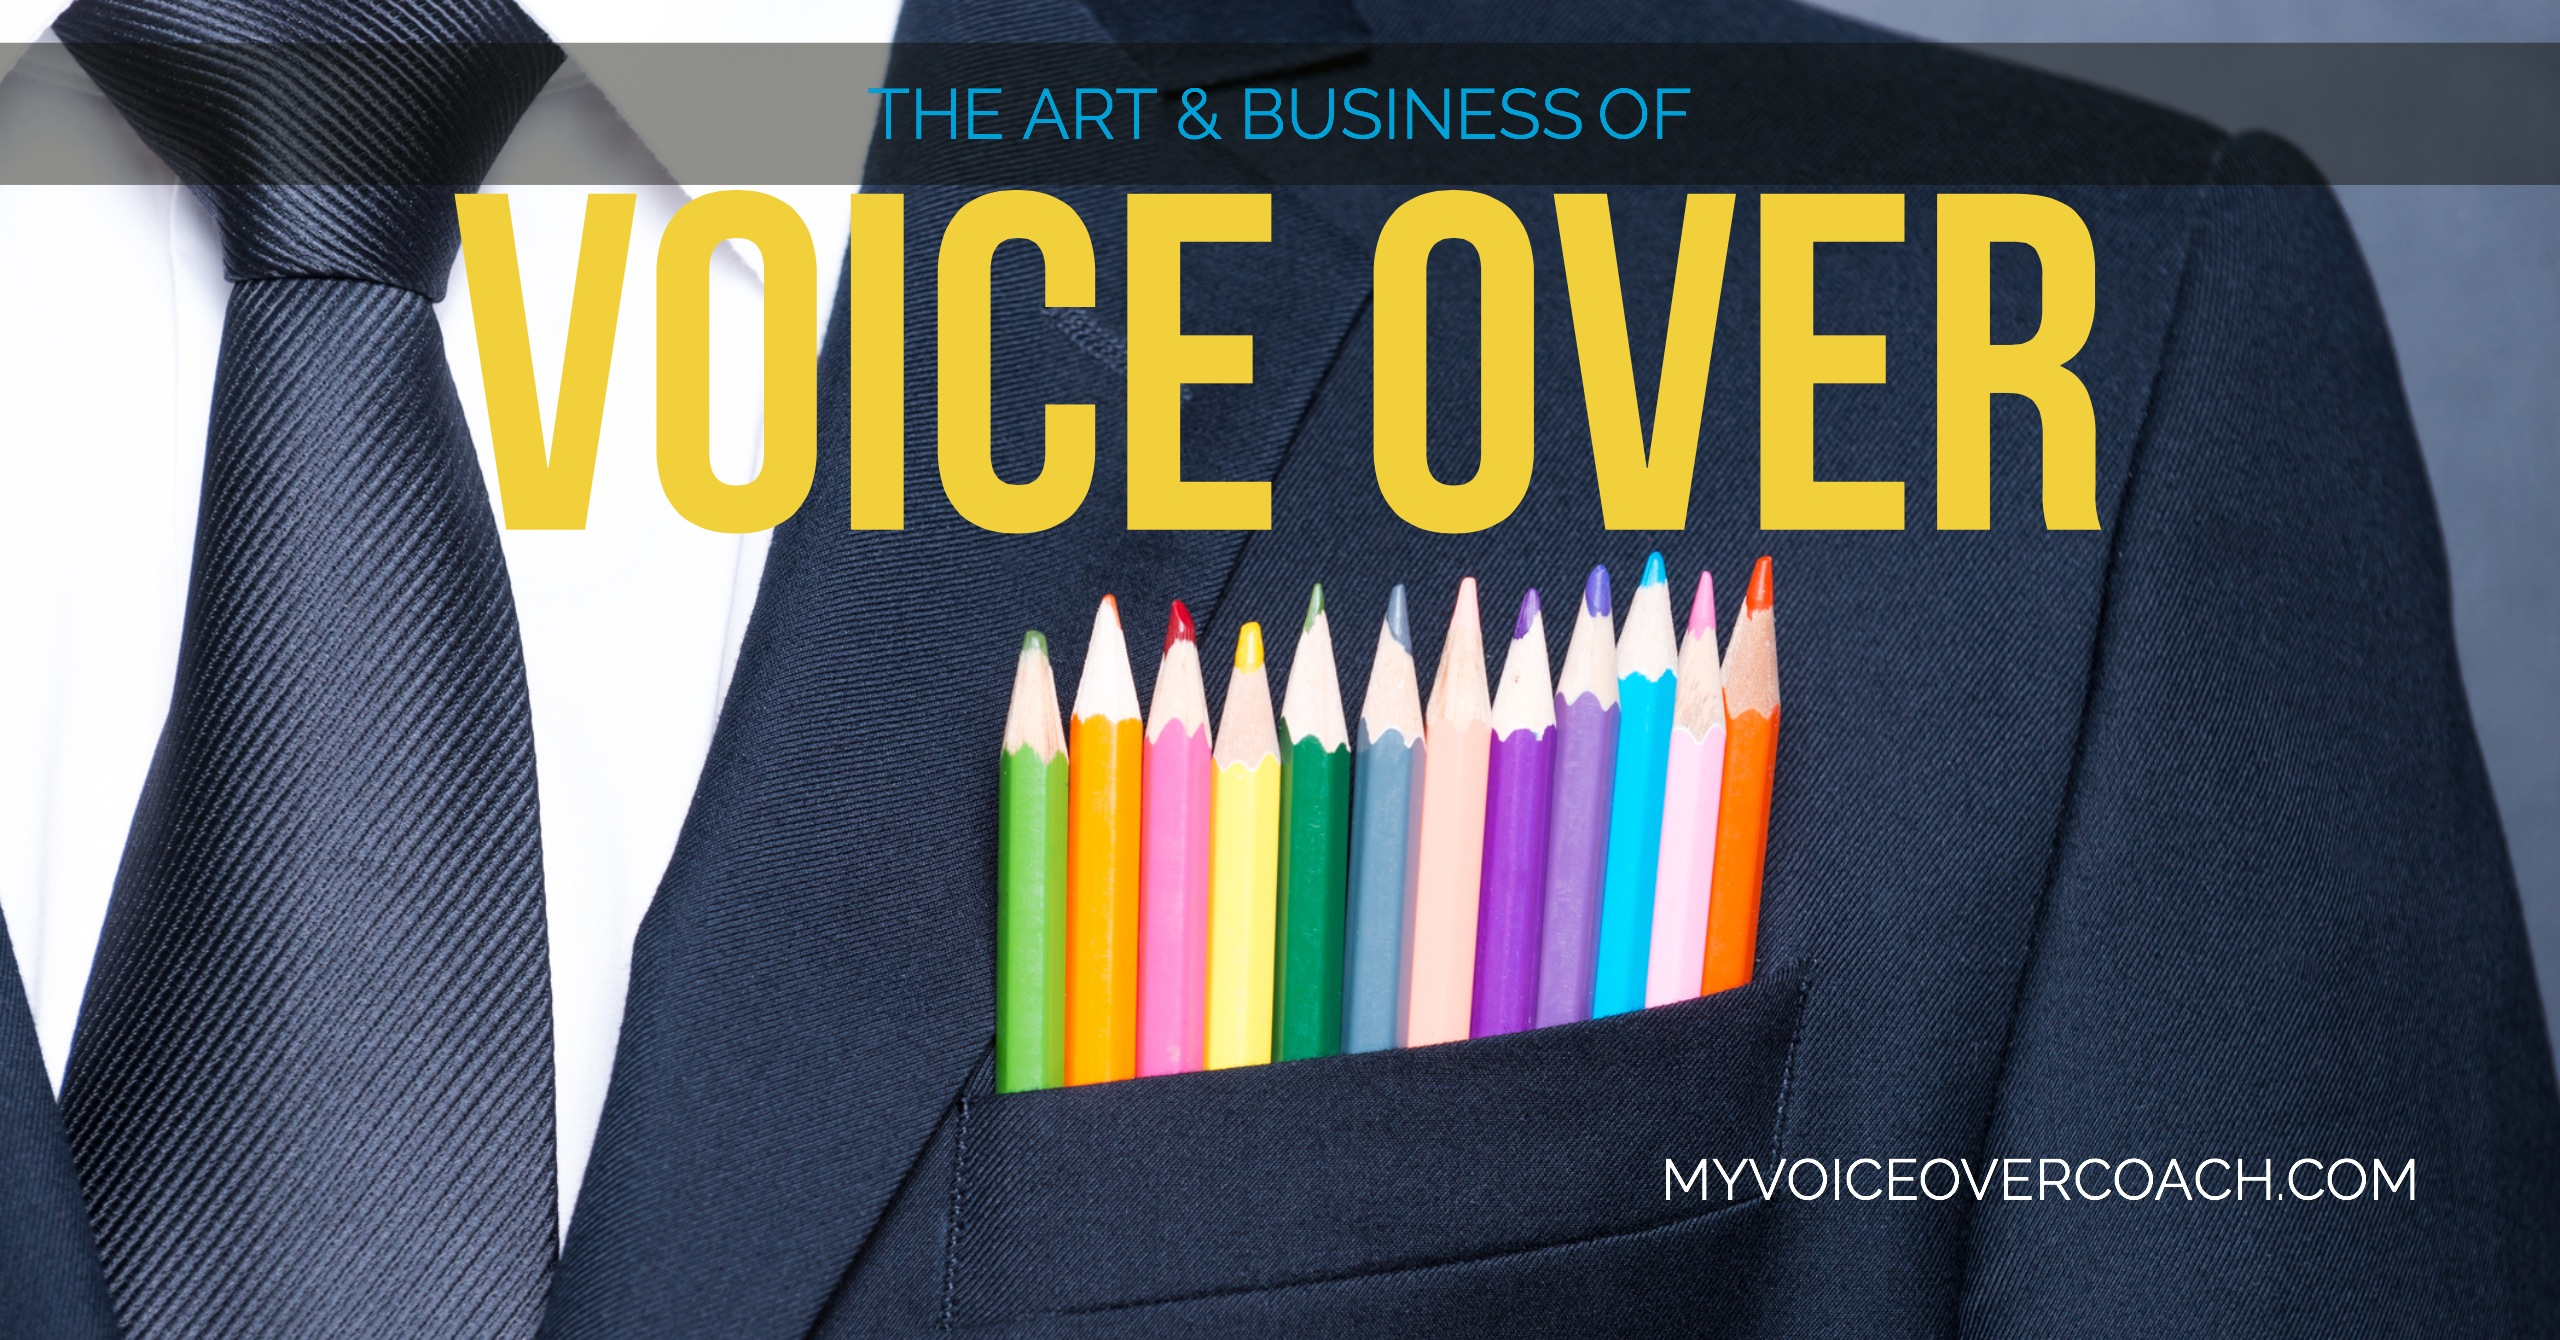 Subscribe to: The Art & Business of Voice Over Newsletter